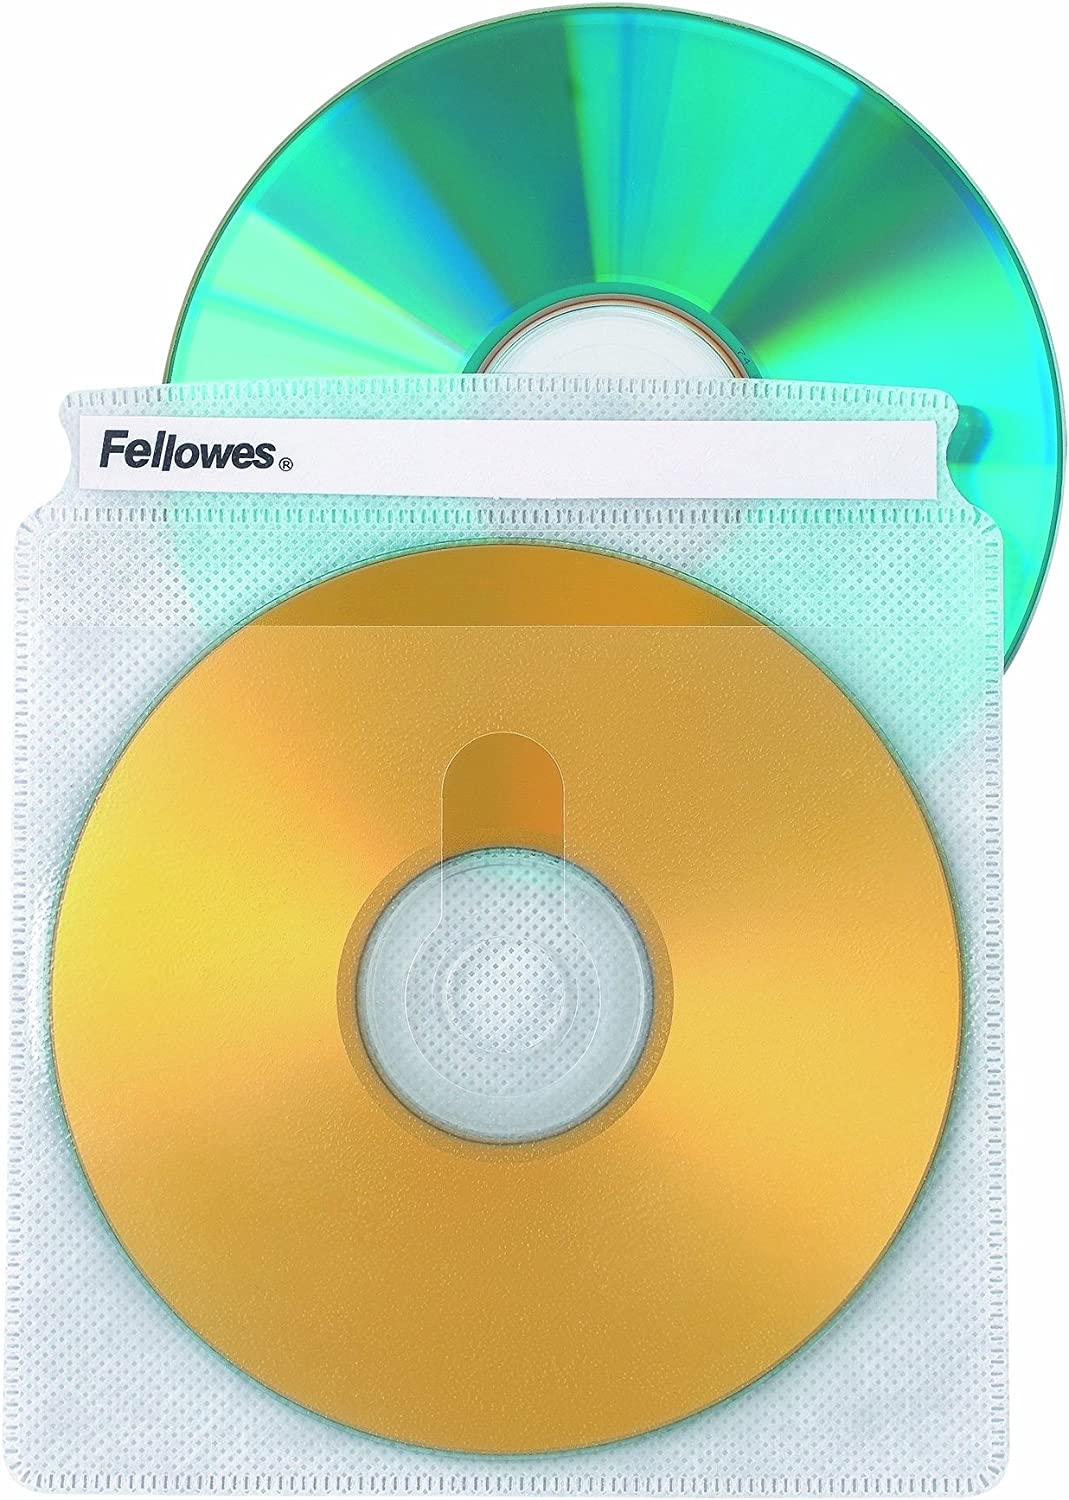 Fellowes CD Sleeves 100 CD Capacity Clear Vinyl Double Sided-50-Pack